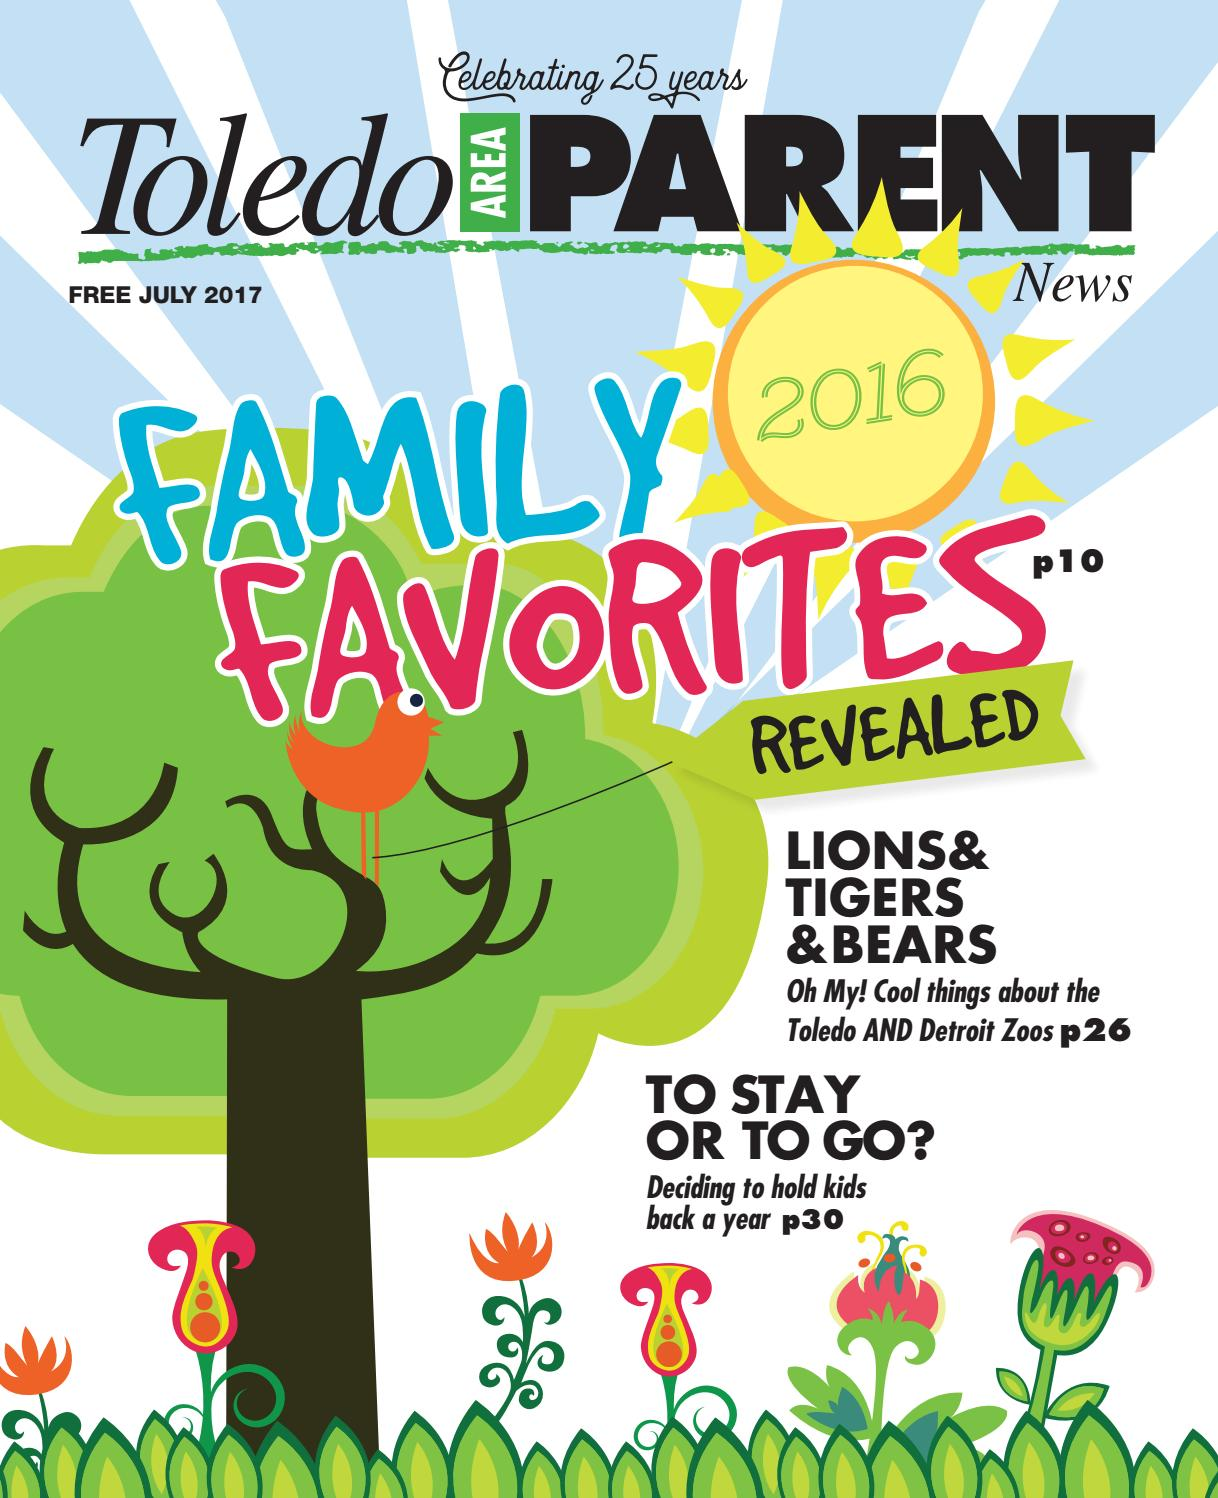 7 1 17 toledo area parent by adams street publishing co issuu